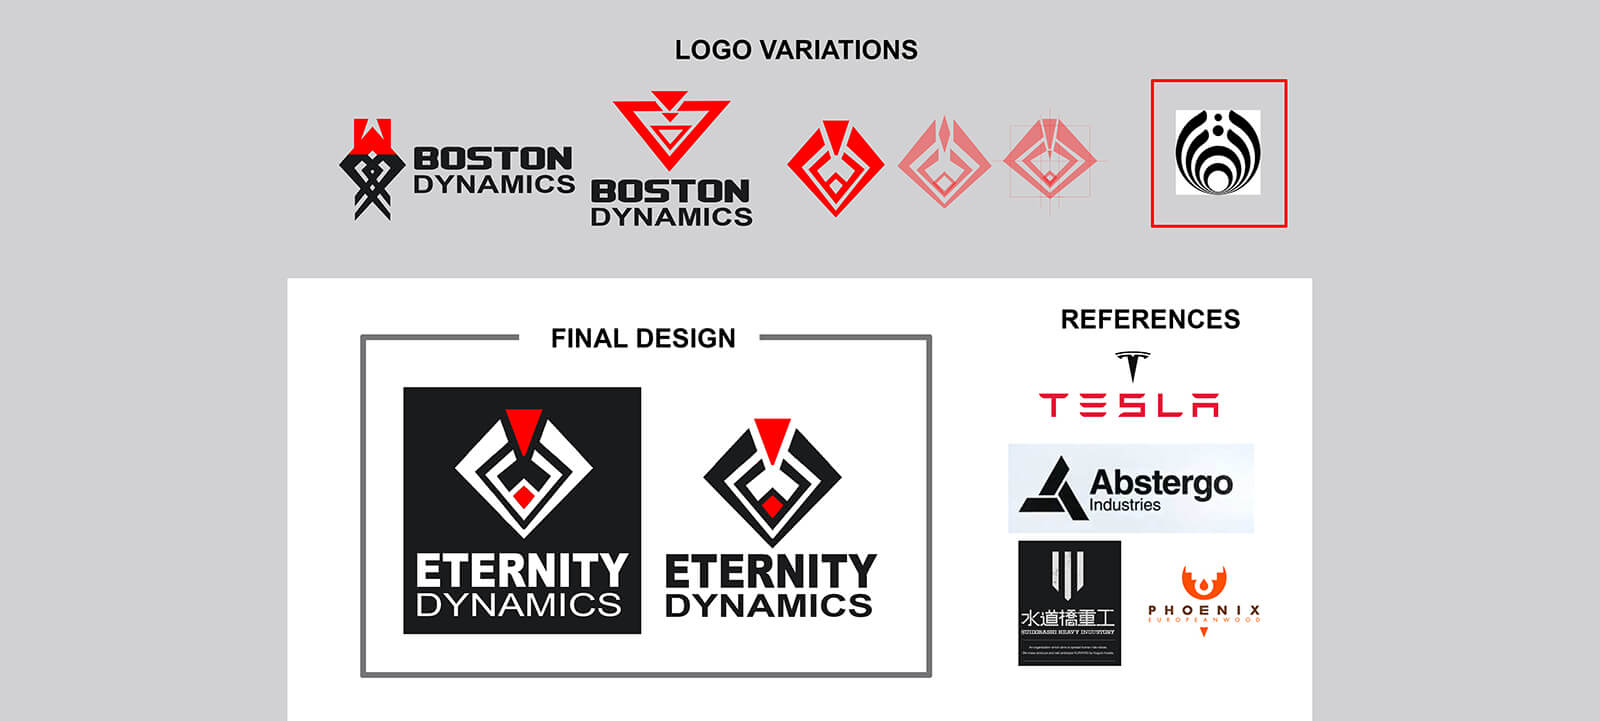 Real-world references and final design for a corporate logo.